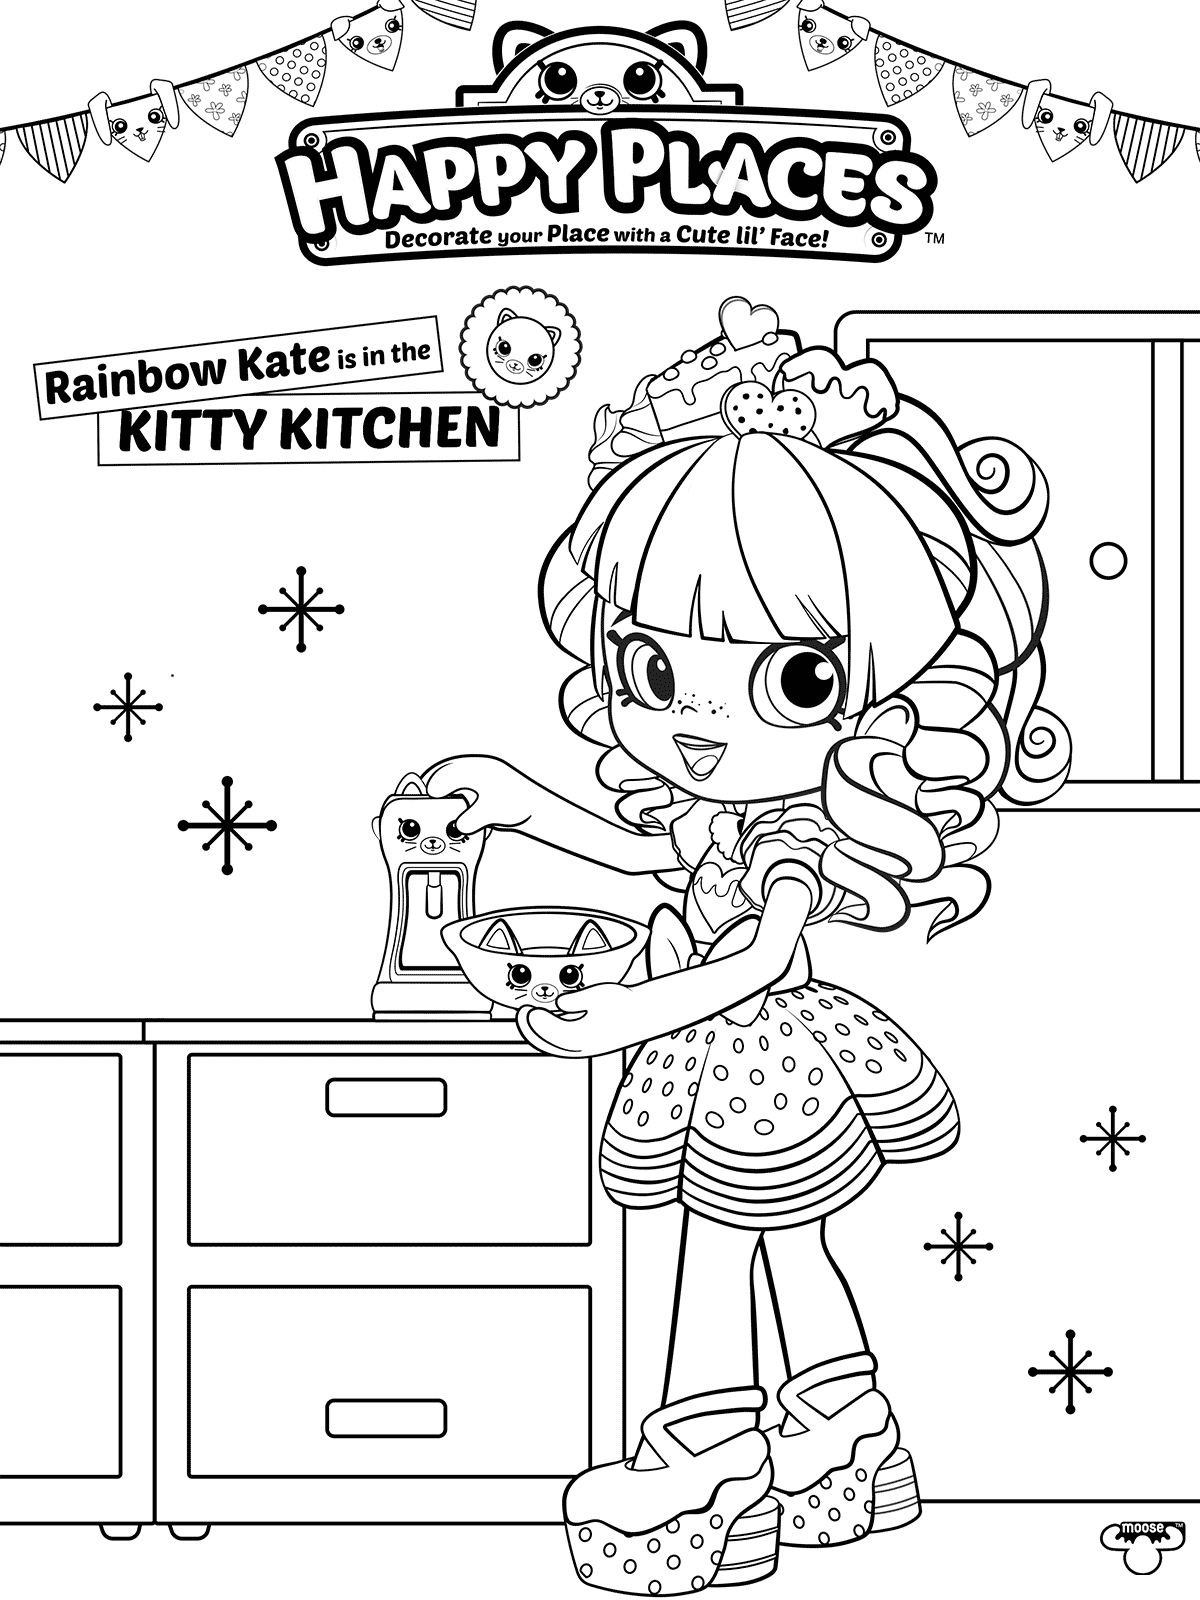 coloring worksheets shopkins shopkins coloring pages best coloring pages for kids coloring shopkins worksheets 1 3